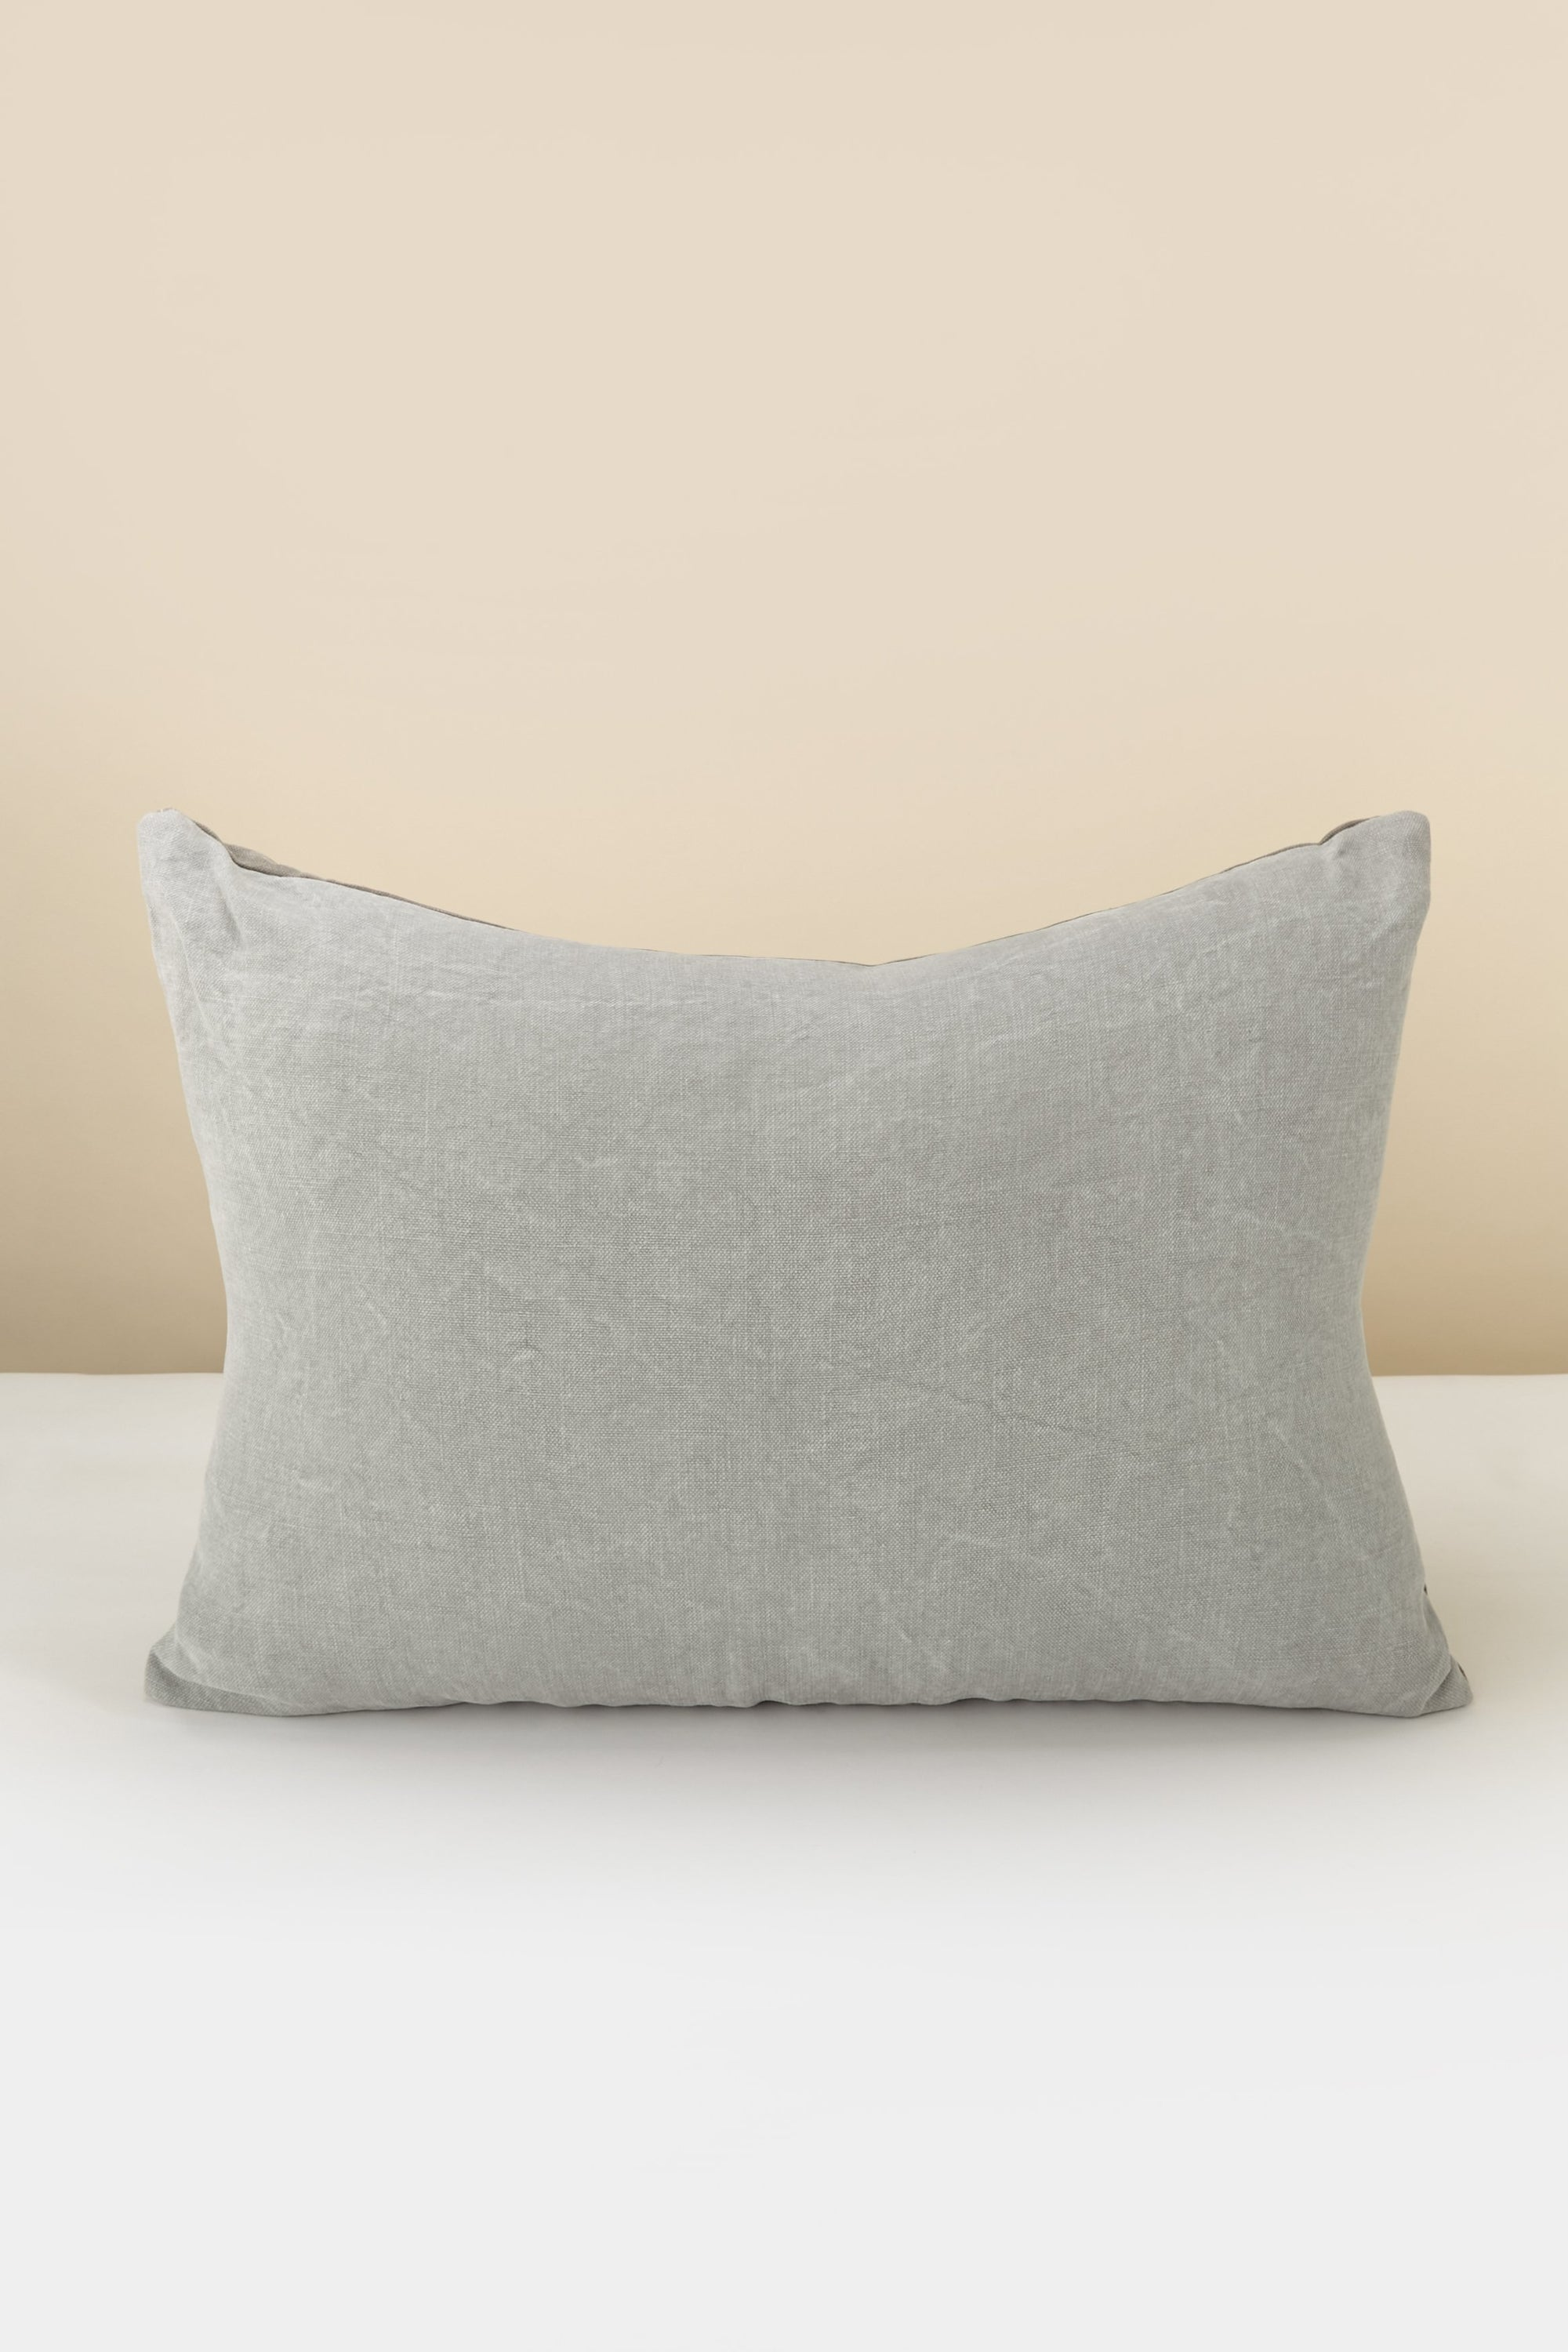 Lee Mathews Linen Rectangle Pillow - Large